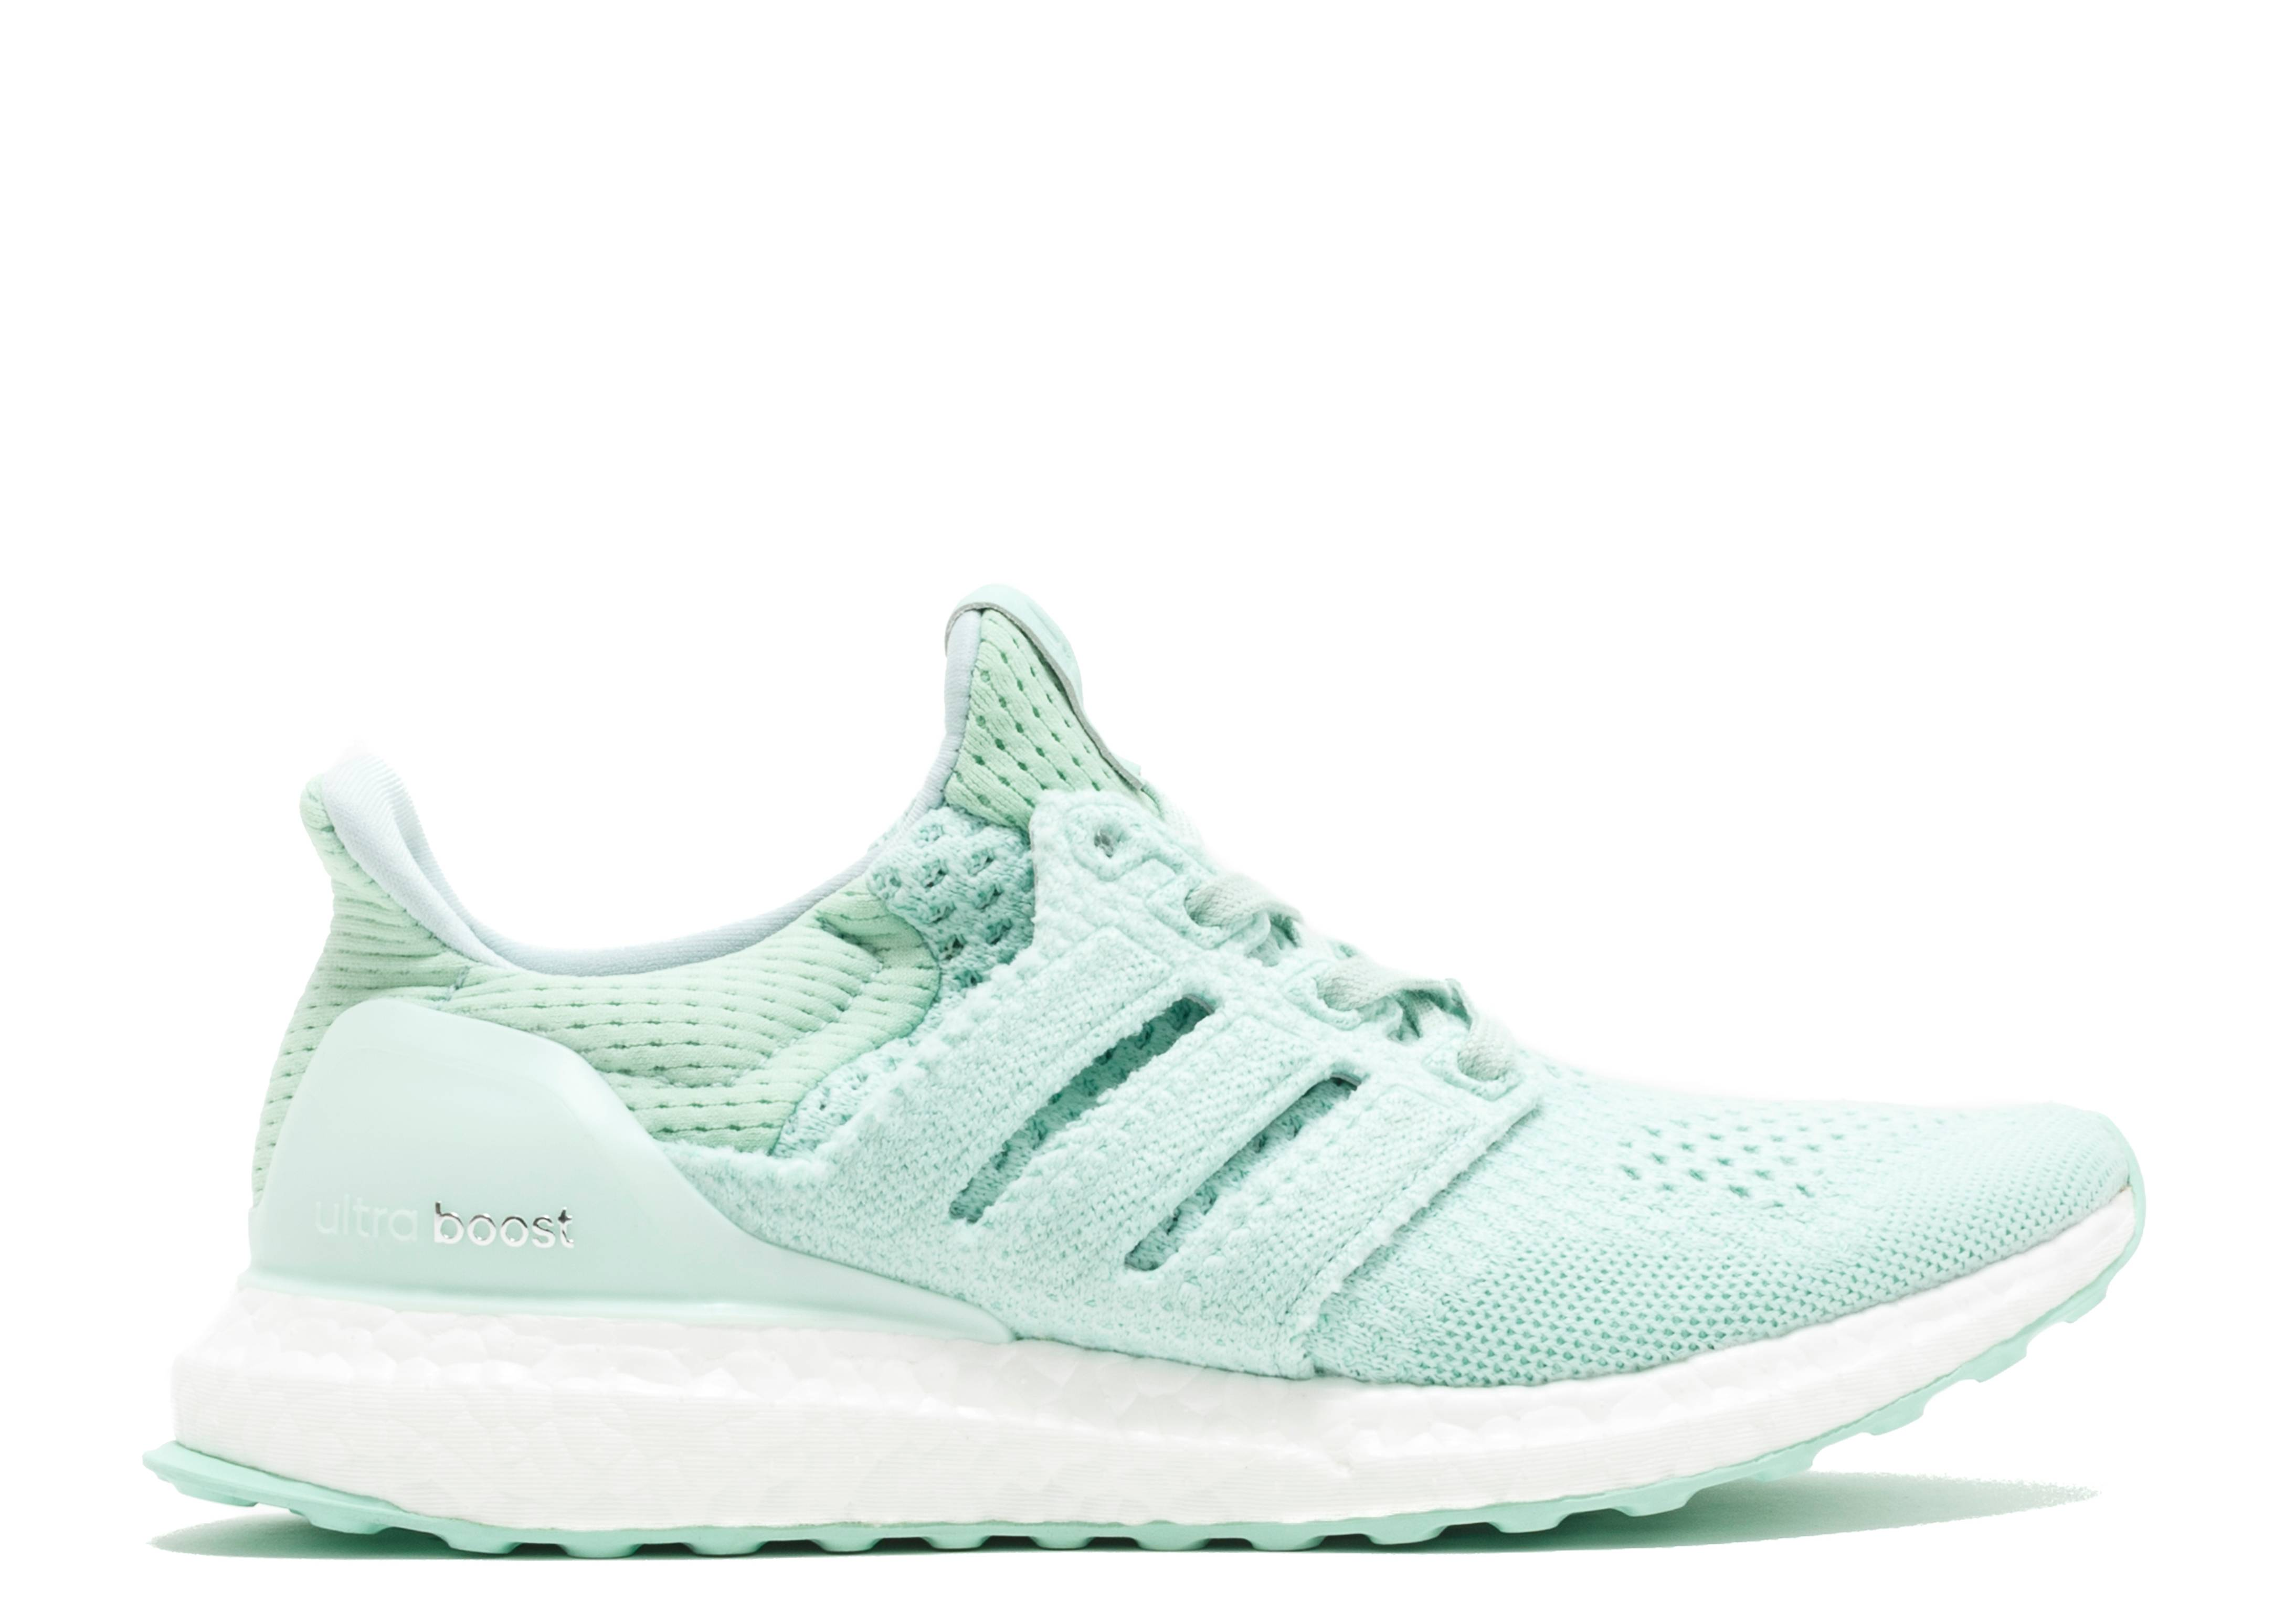 Ultra Boost W Naked 'Naked' - Bb1141 - Size 10.5 - Us Size F3T79